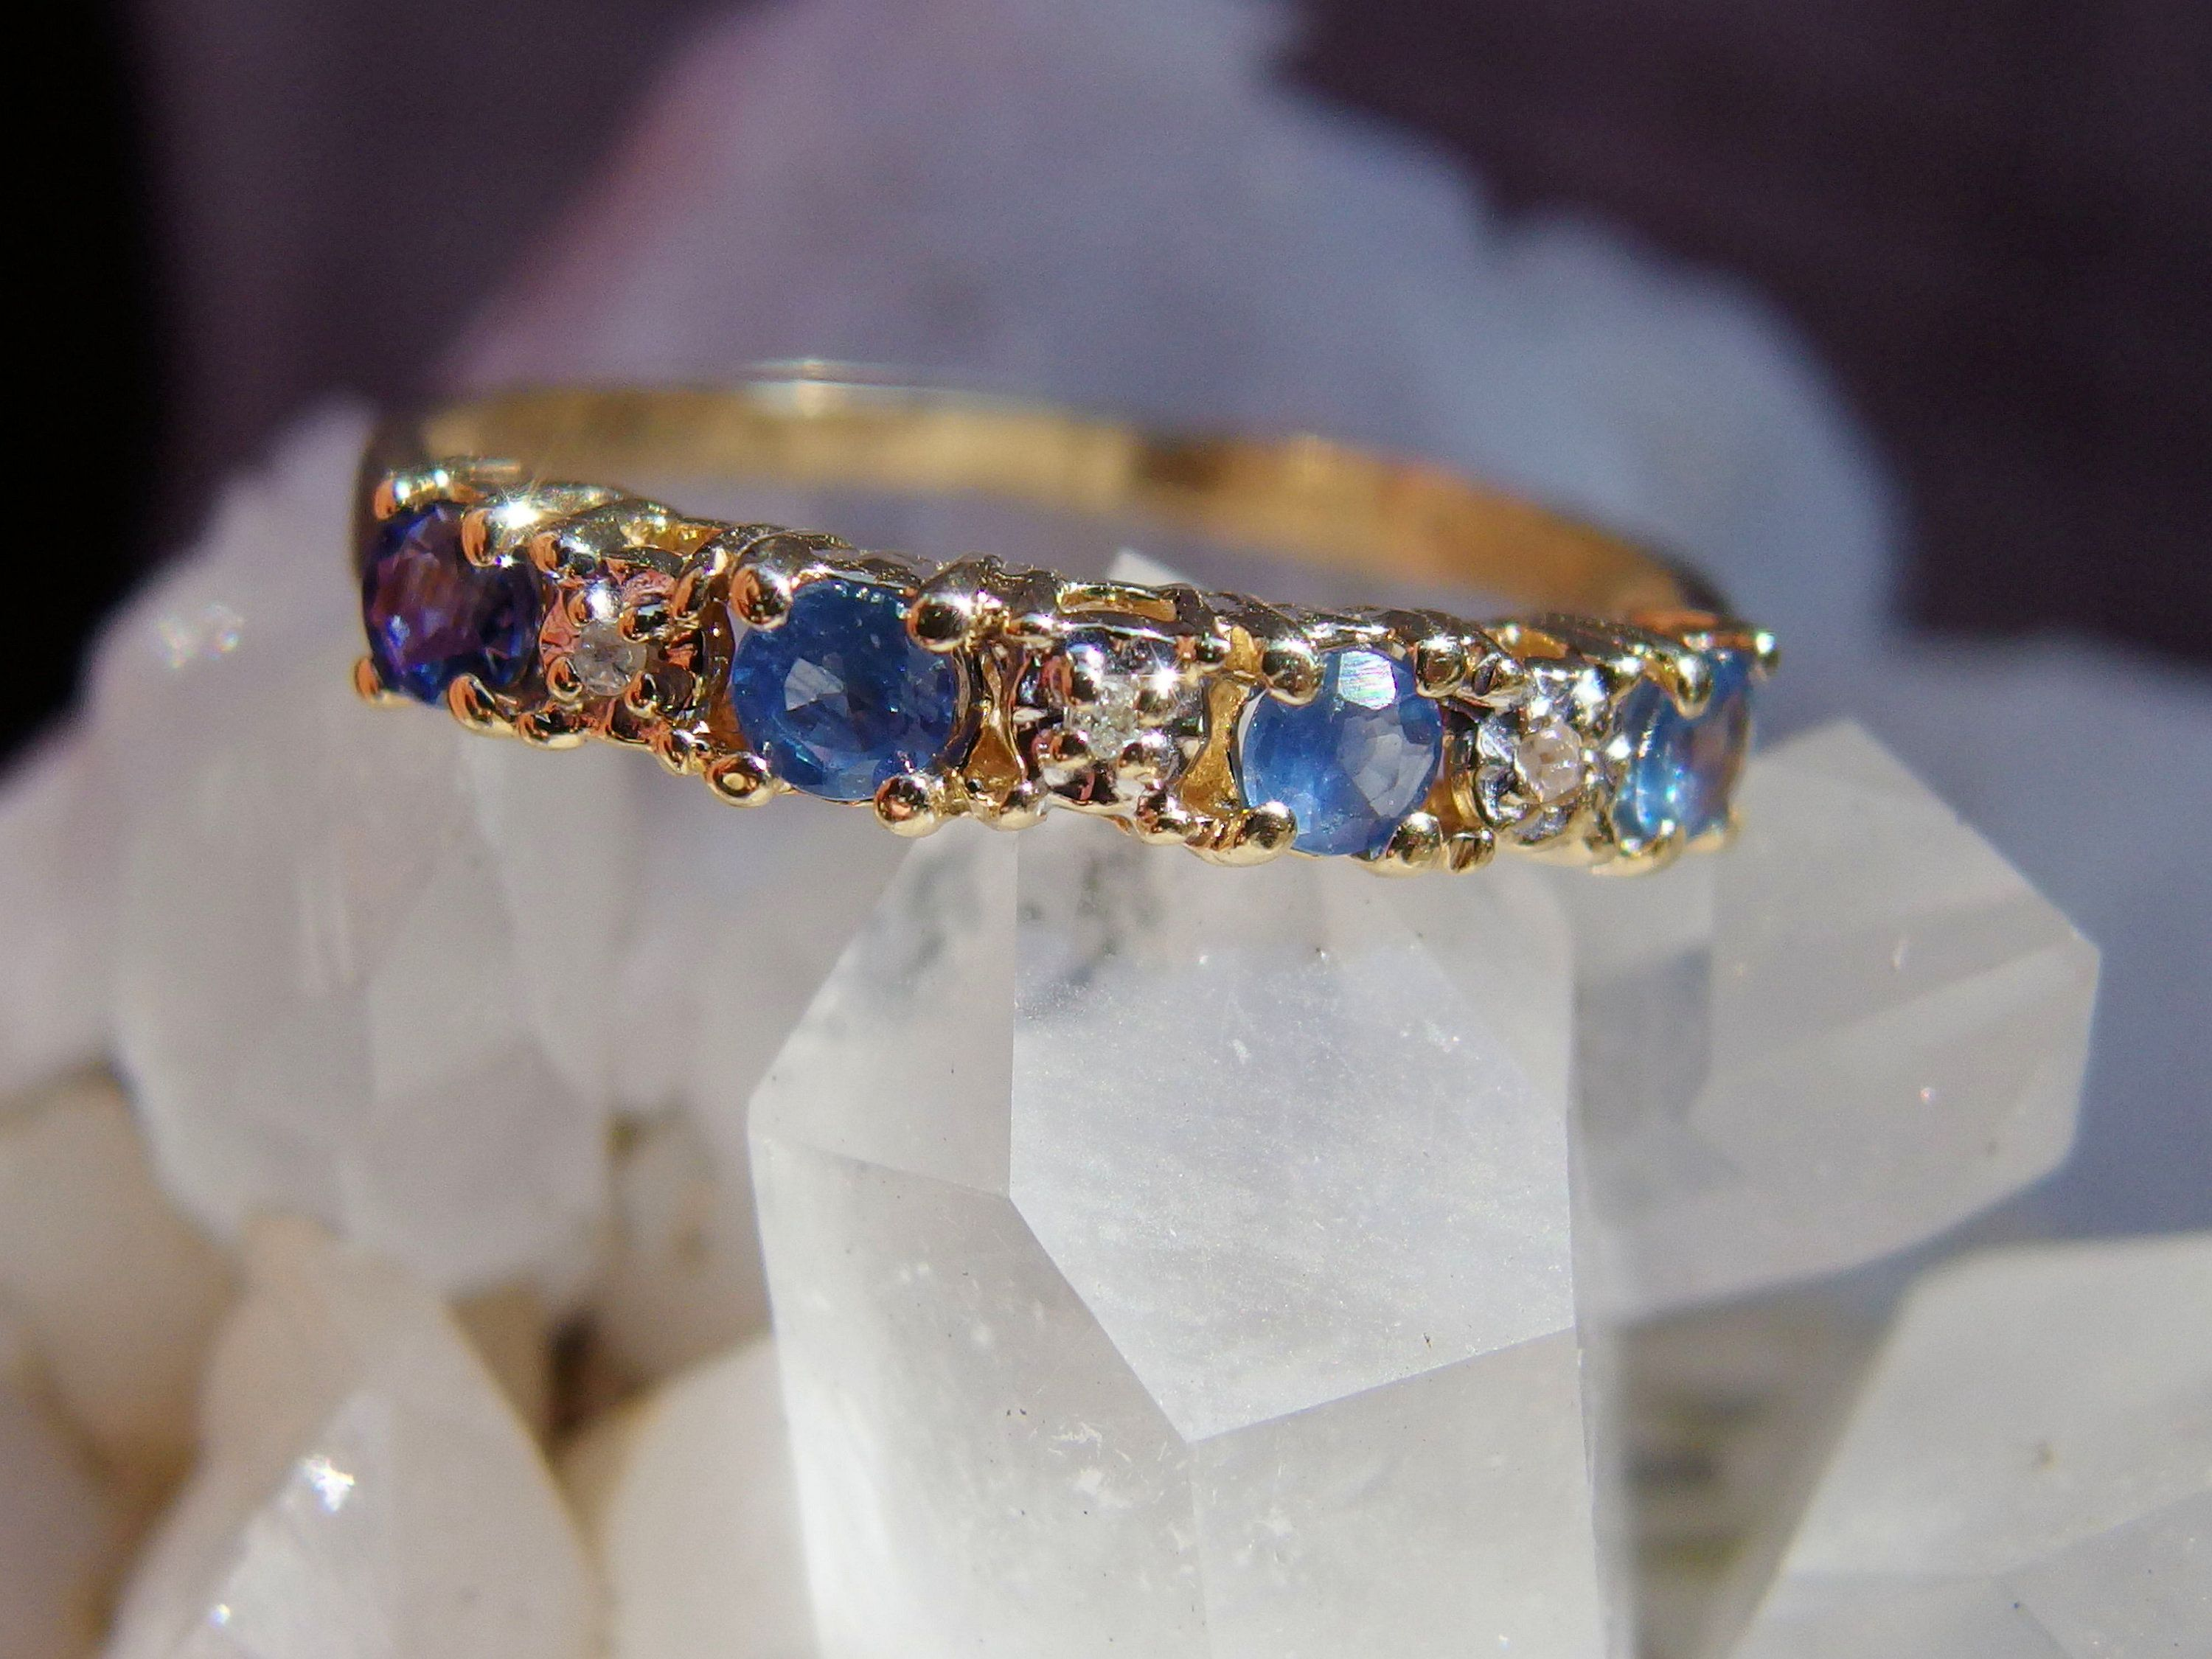 10k Yellow Gold Sapphire Diamond Band 4 Medium Blue Faceted Stones 3 Accent Diamonds In Illusion Moun Sapphire And Diamond Band Yellow Gold Sapphire Sapphire